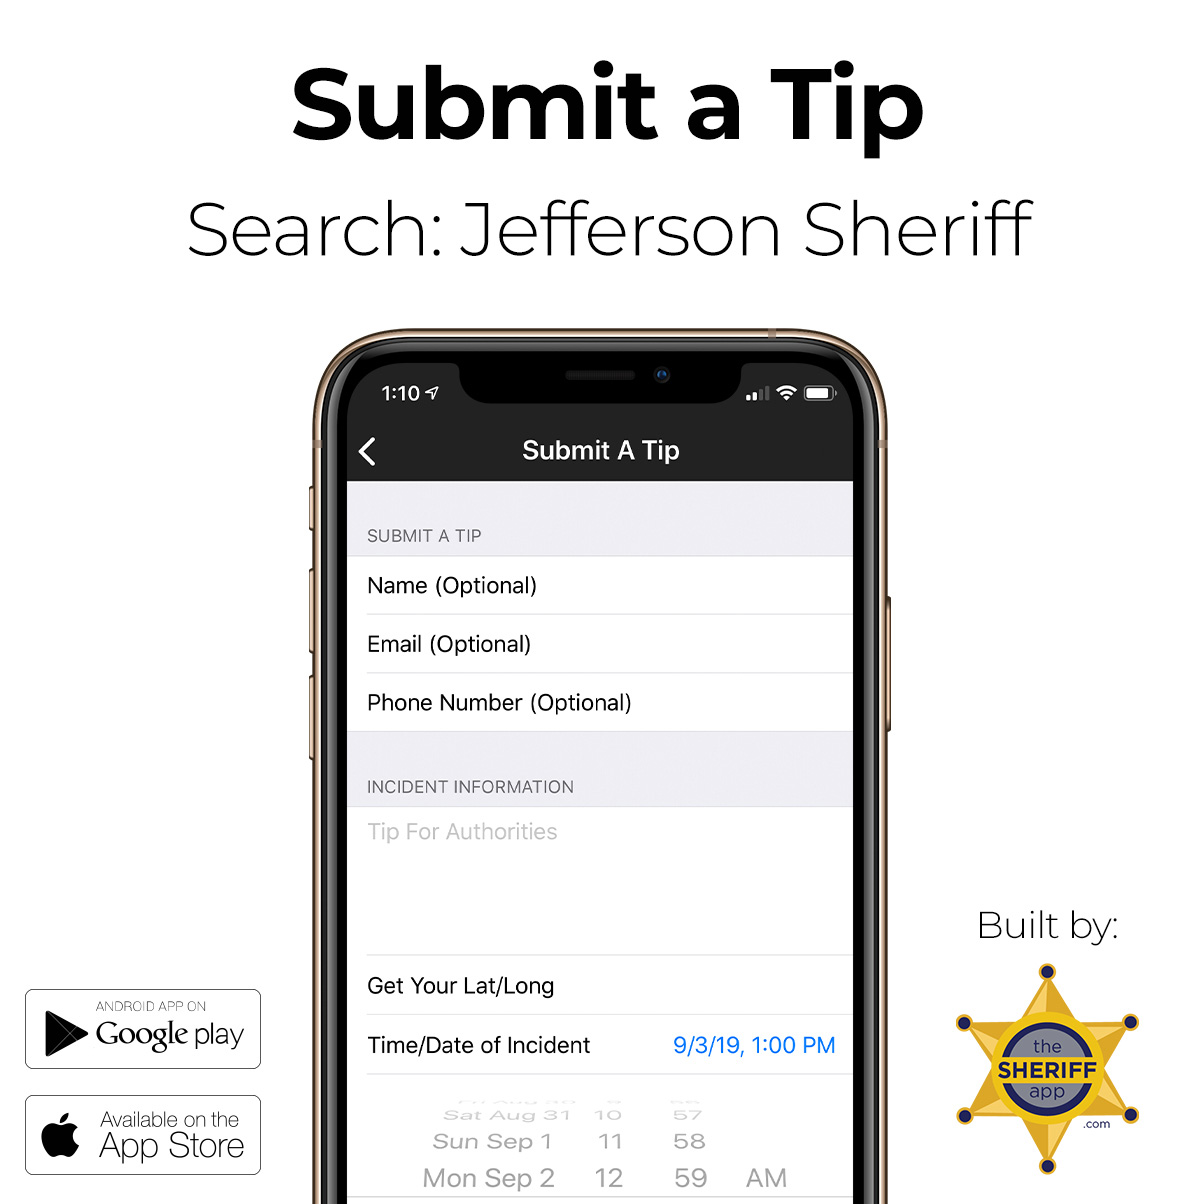 Jefferson-County-Sheriff-Department-Alabama-App-Submit-Tip